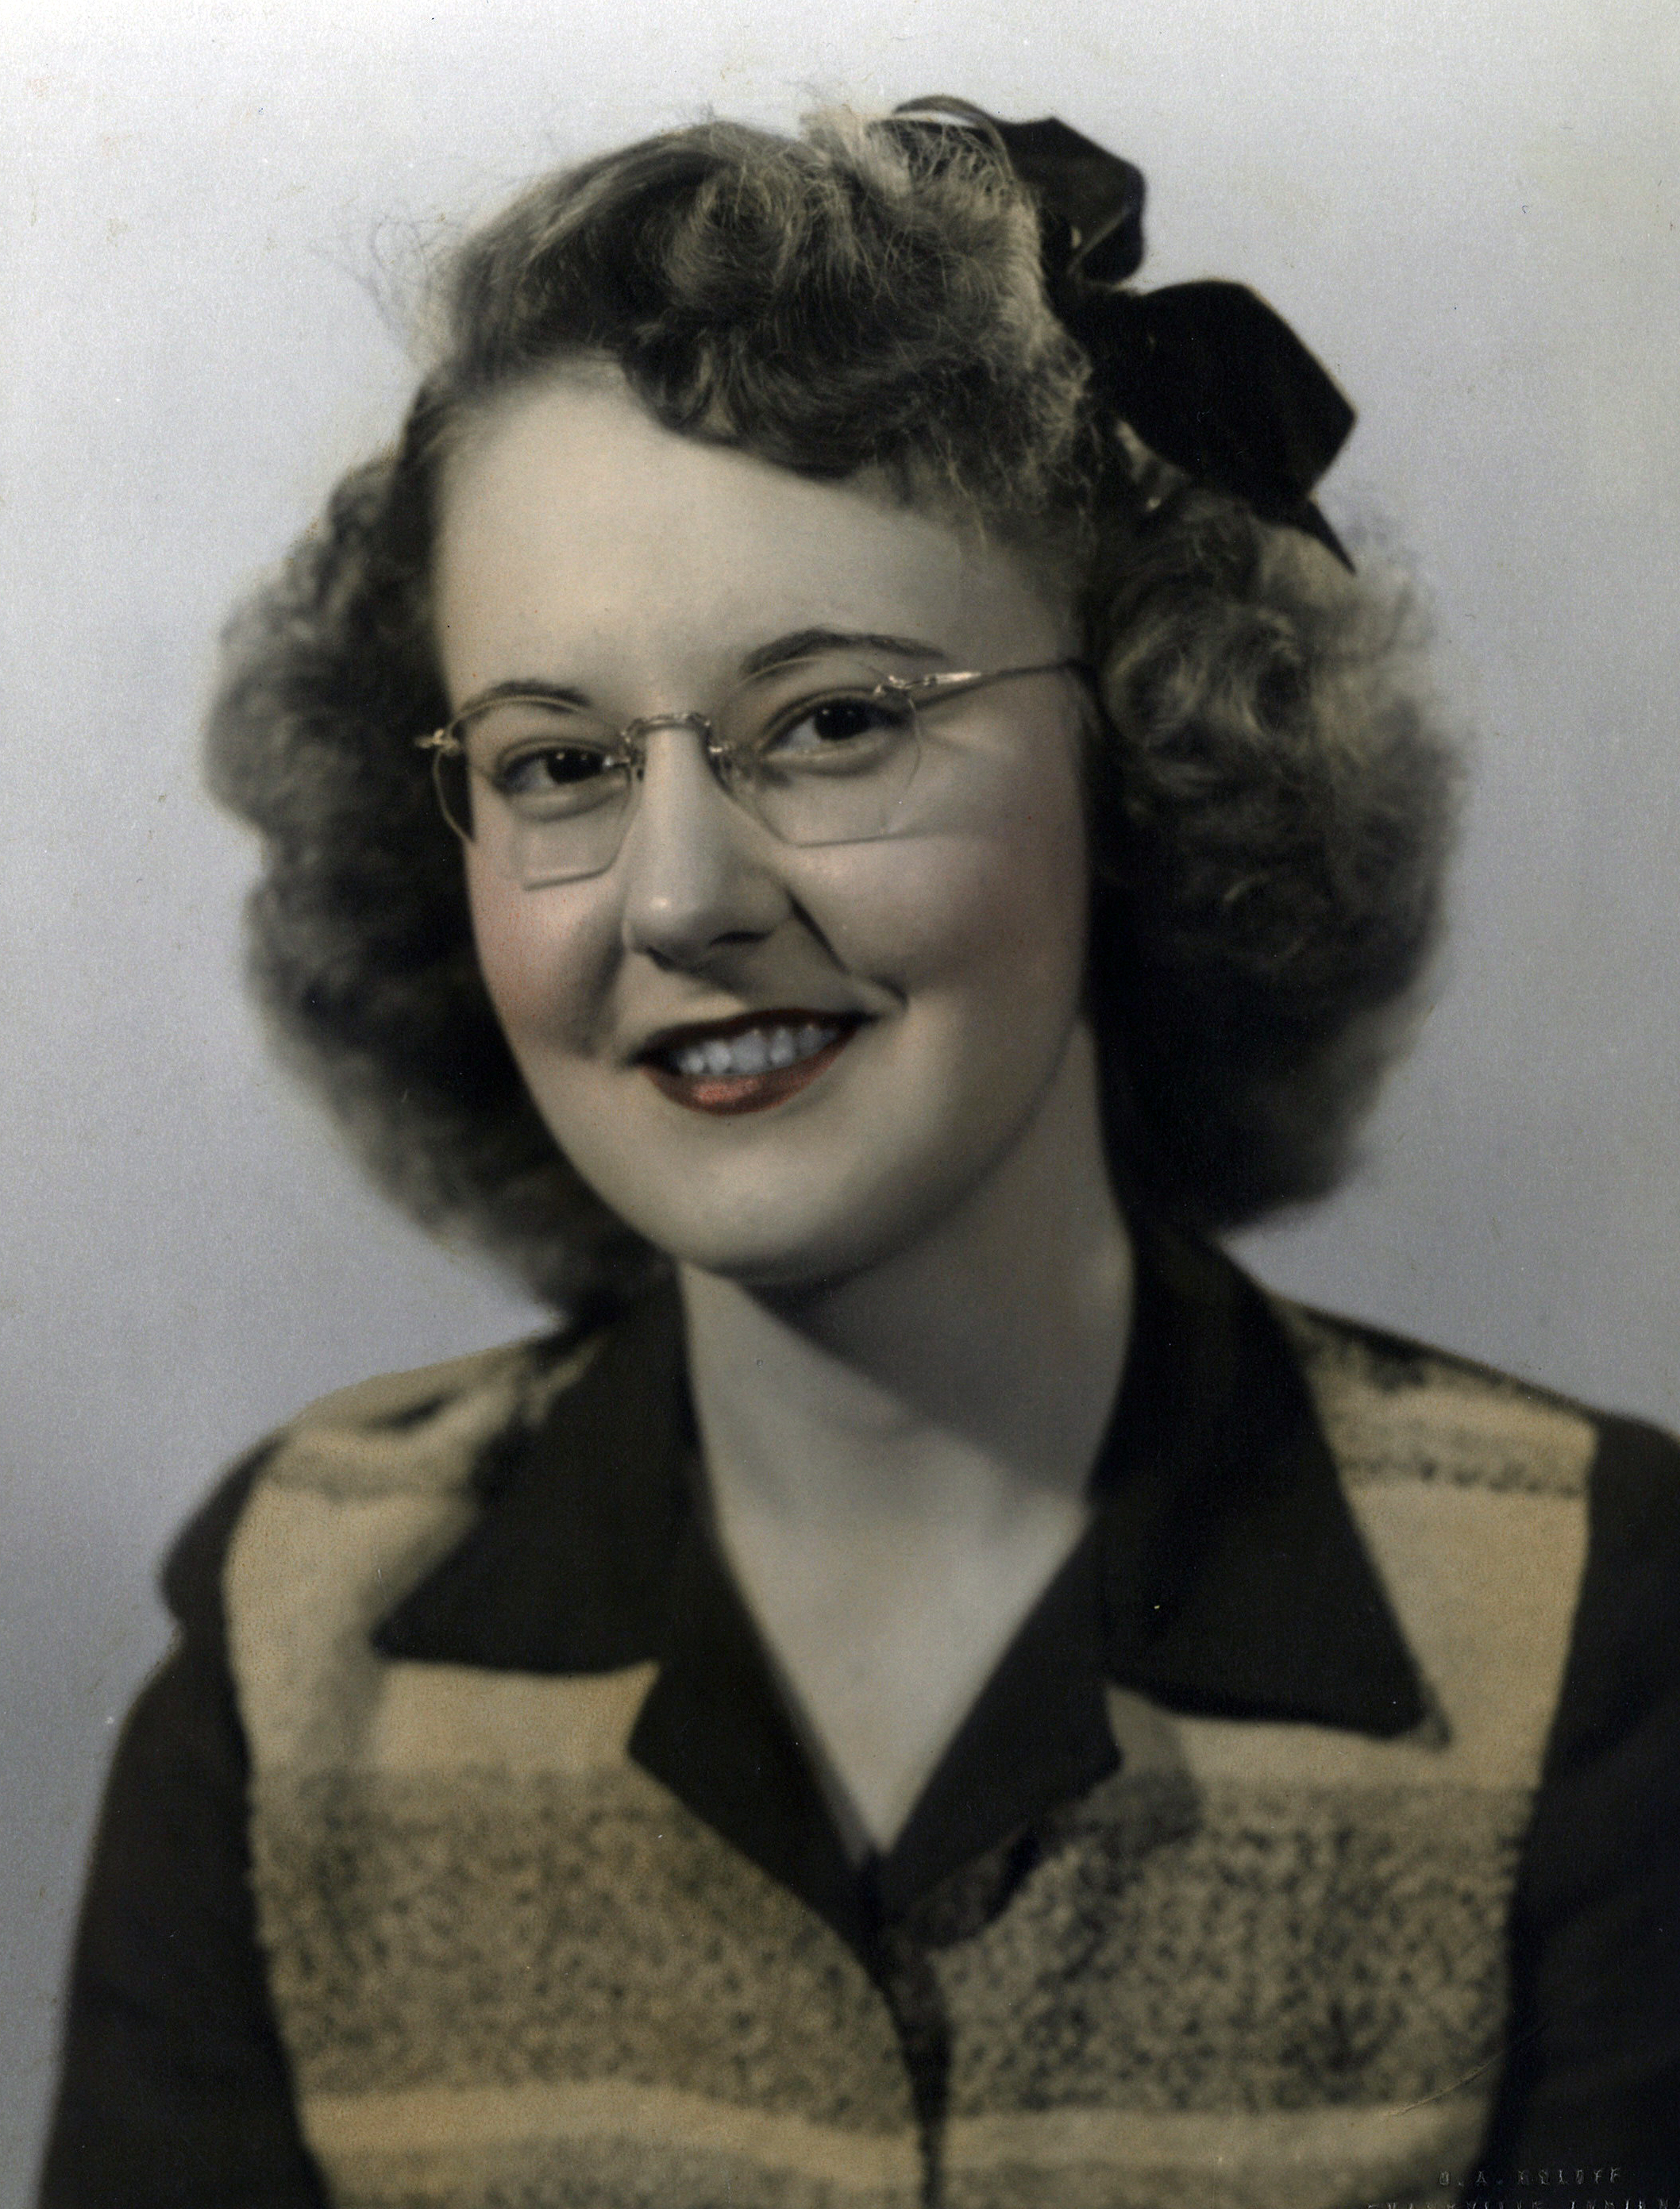 Colleen May (Ebmeyer) Ress